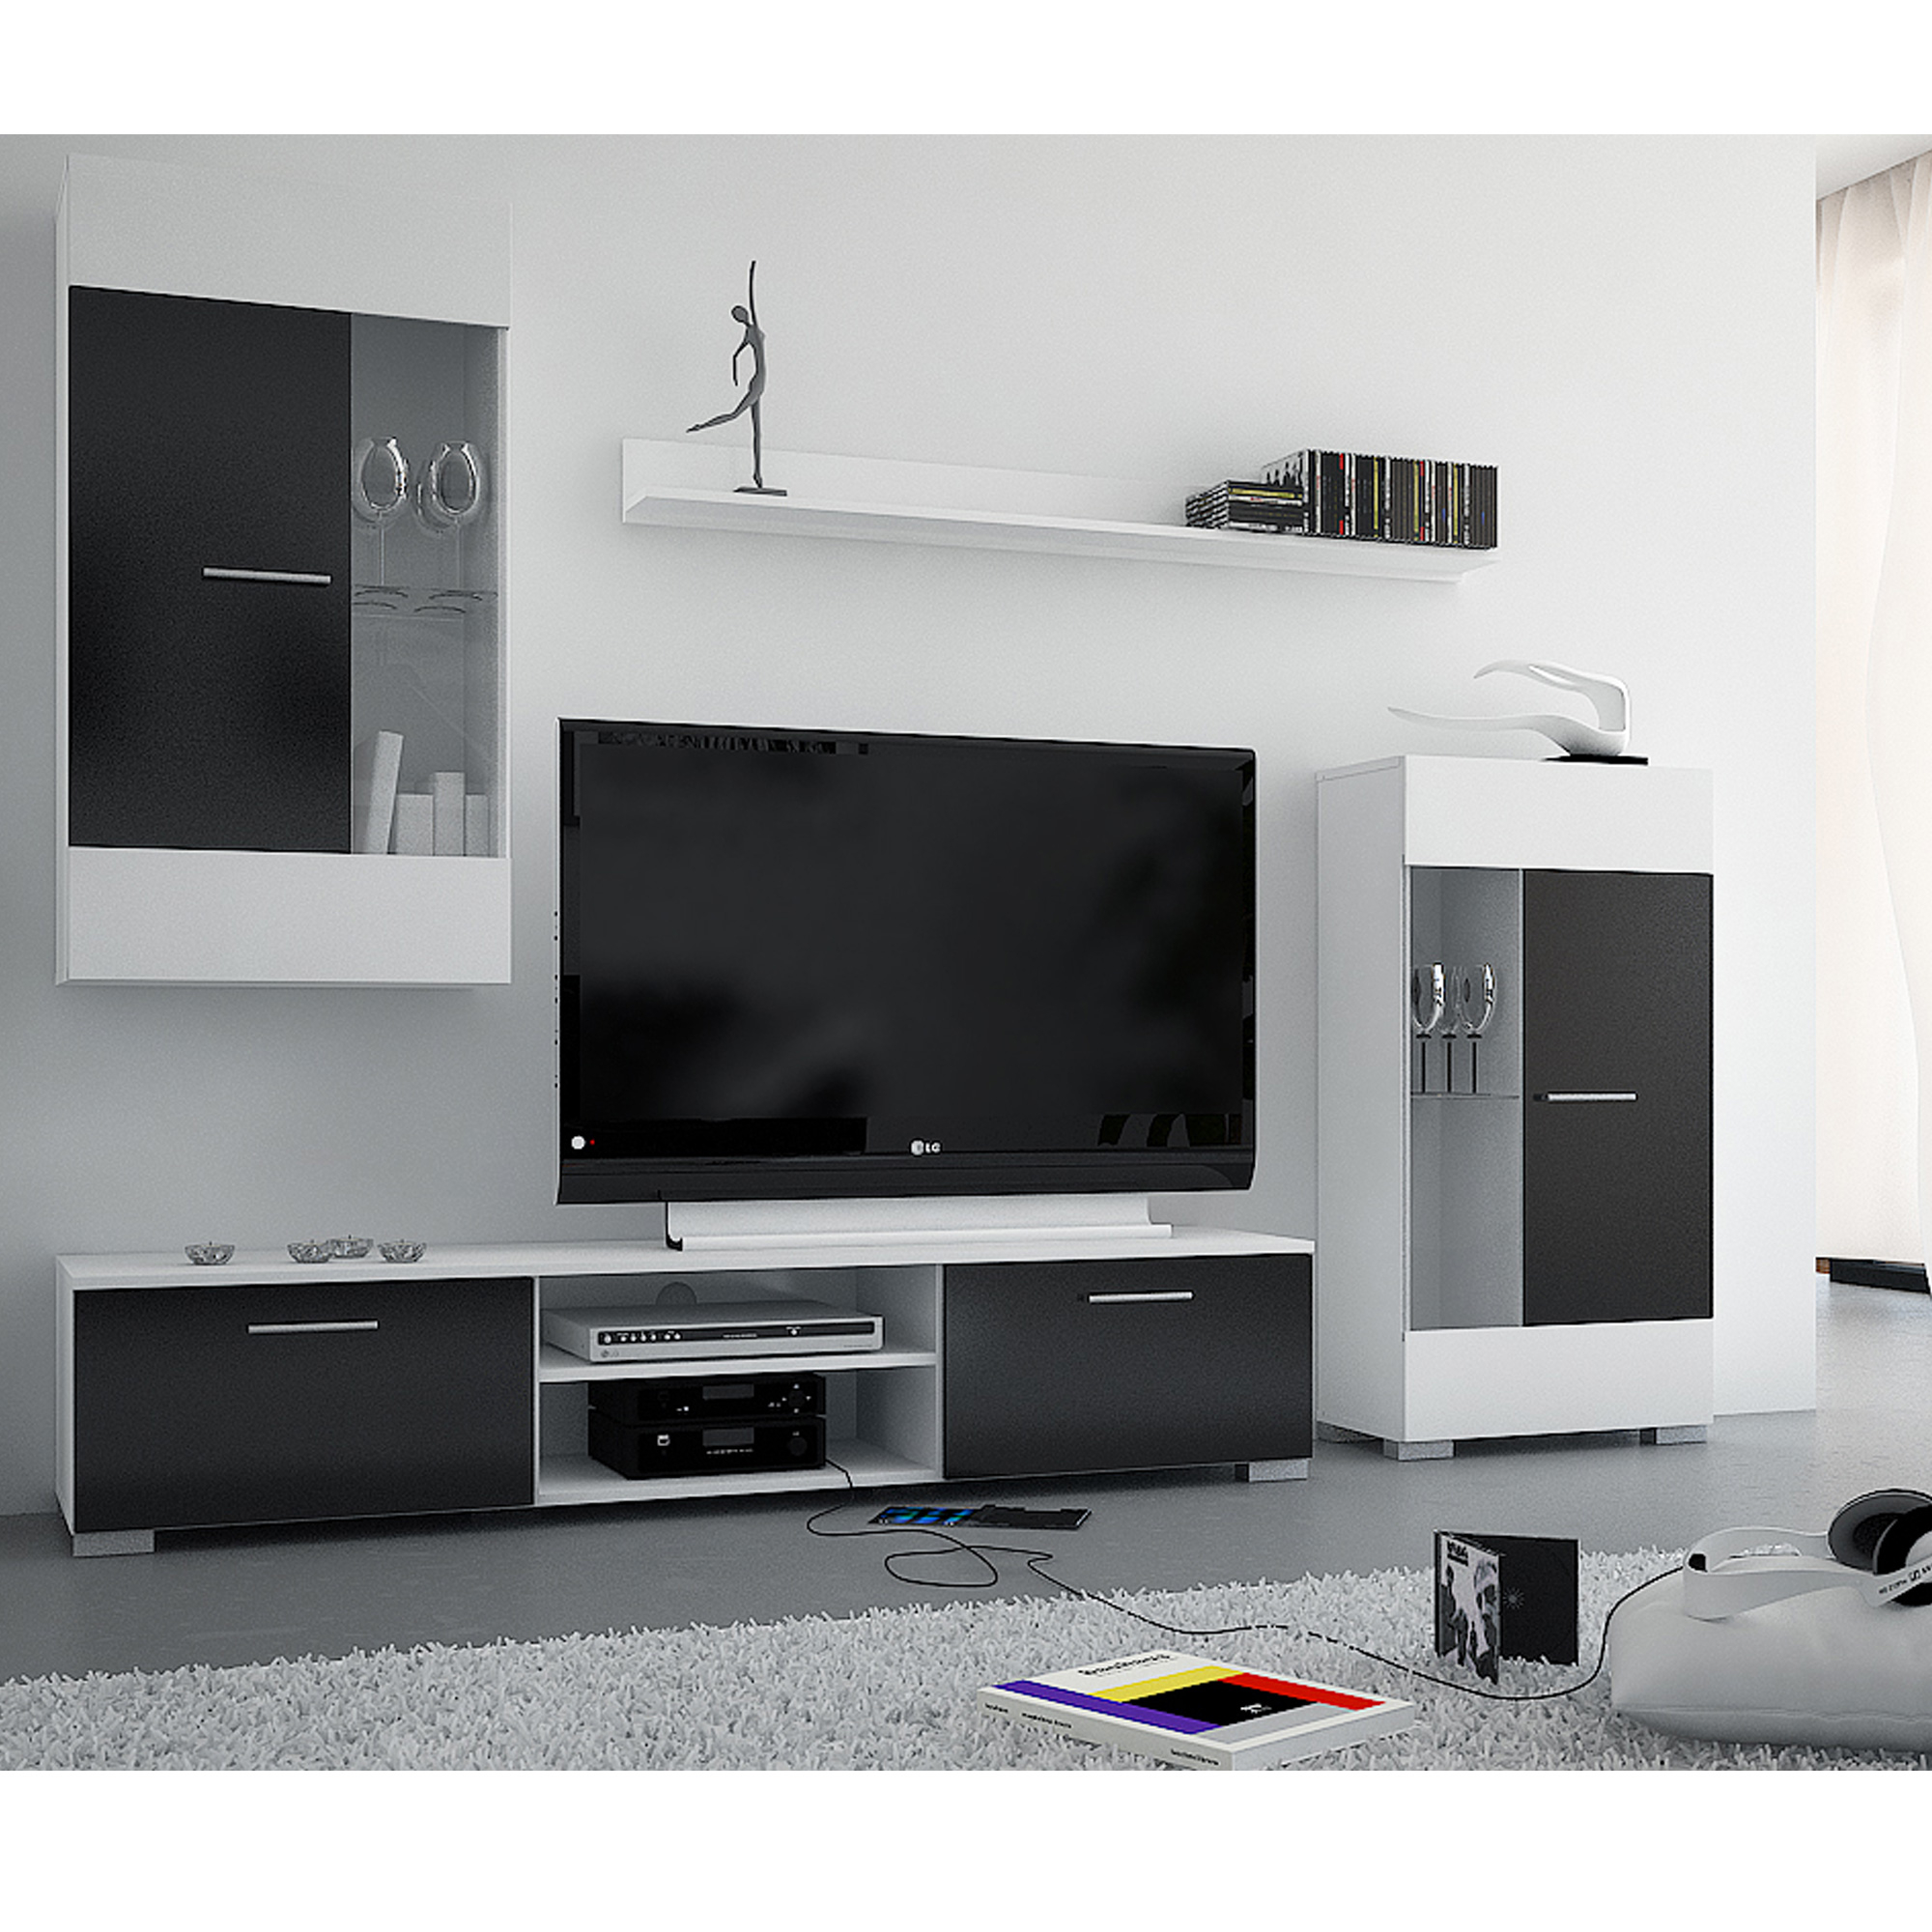 meubles tv soldes excellent merveilleux meuble tv solde. Black Bedroom Furniture Sets. Home Design Ideas